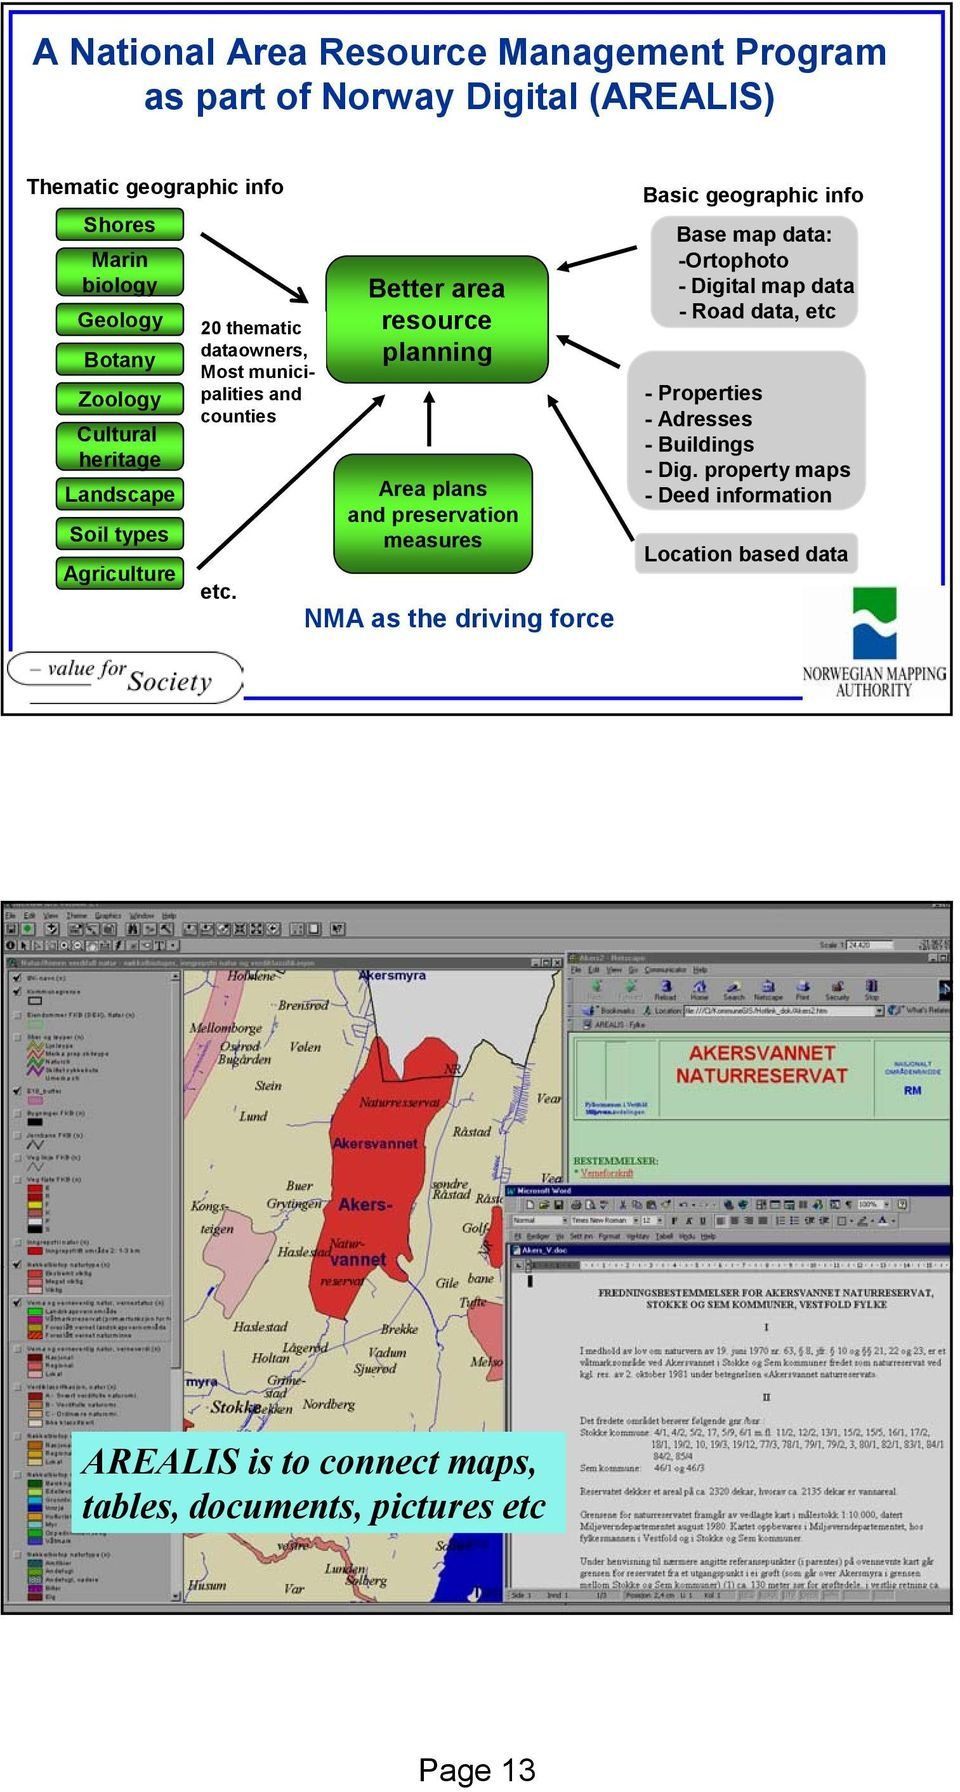 Better area resource planning Area plans and preservation measures NMA as the driving force Basic geographic info Base map data: -Ortophoto - Digital